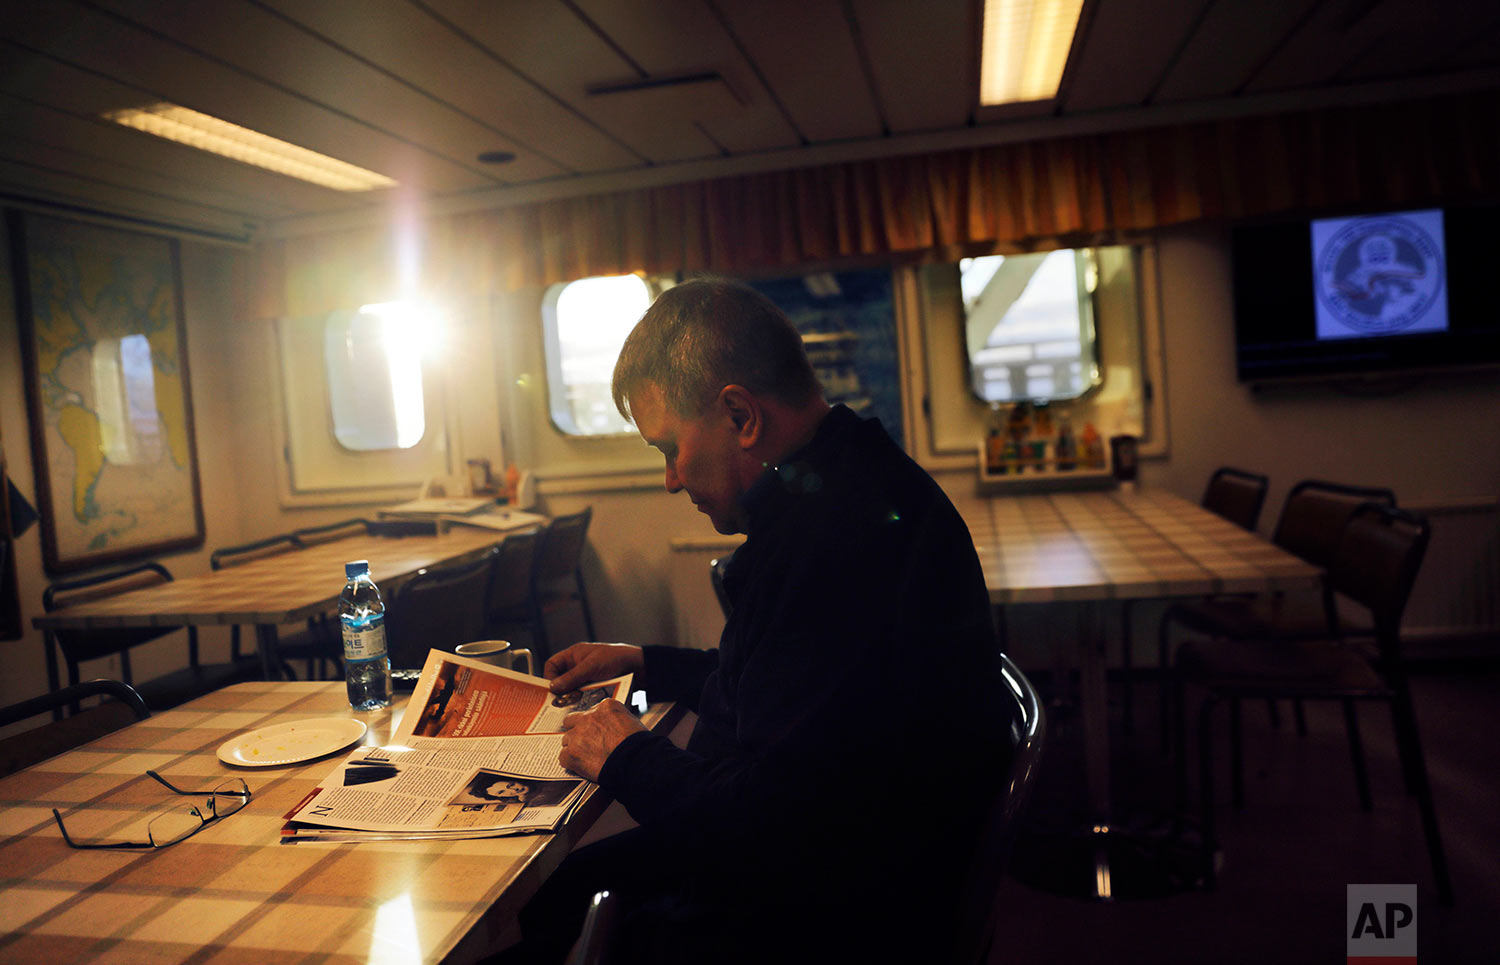 "The sun shines through the window of the mess hall at midnight as first engineer Kari Suni reads a magazine over a cup of coffee before starting his shift in the engine room of the Finnish icebreaker MSV Nordica as it traverses the Northwest Passage through the Canadian Arctic Archipelago, early Monday, July 17, 2017. Suni has worked on icebreakers for 30 years and always starts his shift with a cup of coffee. After all those years, he prefers the overnight shift rather than working during the day. ""It's so quiet and not in a hurry all the time,"" Suni said. ""The dark is good for me."" (AP Photo/David Goldman)"